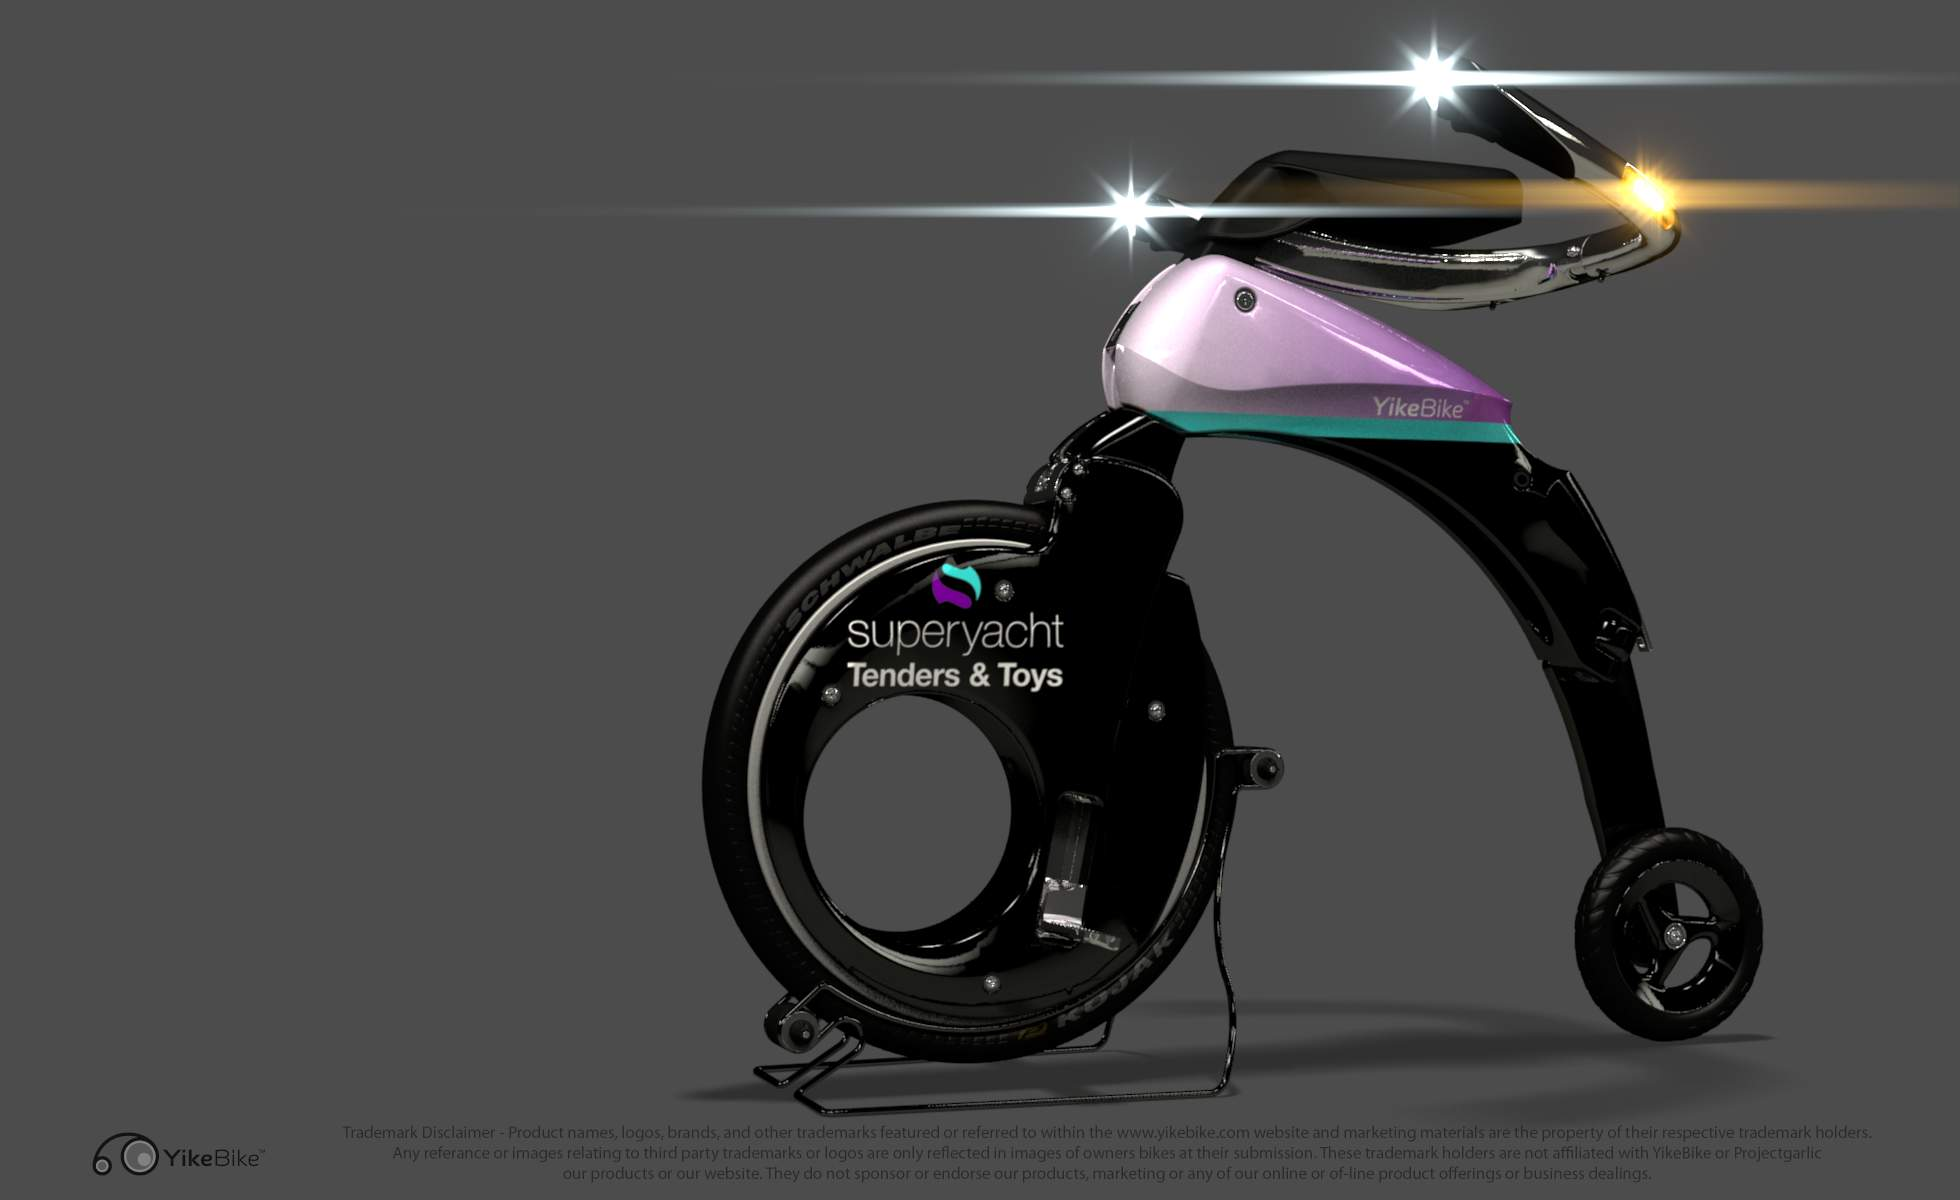 Innovative new Yike Bike offered for yachts